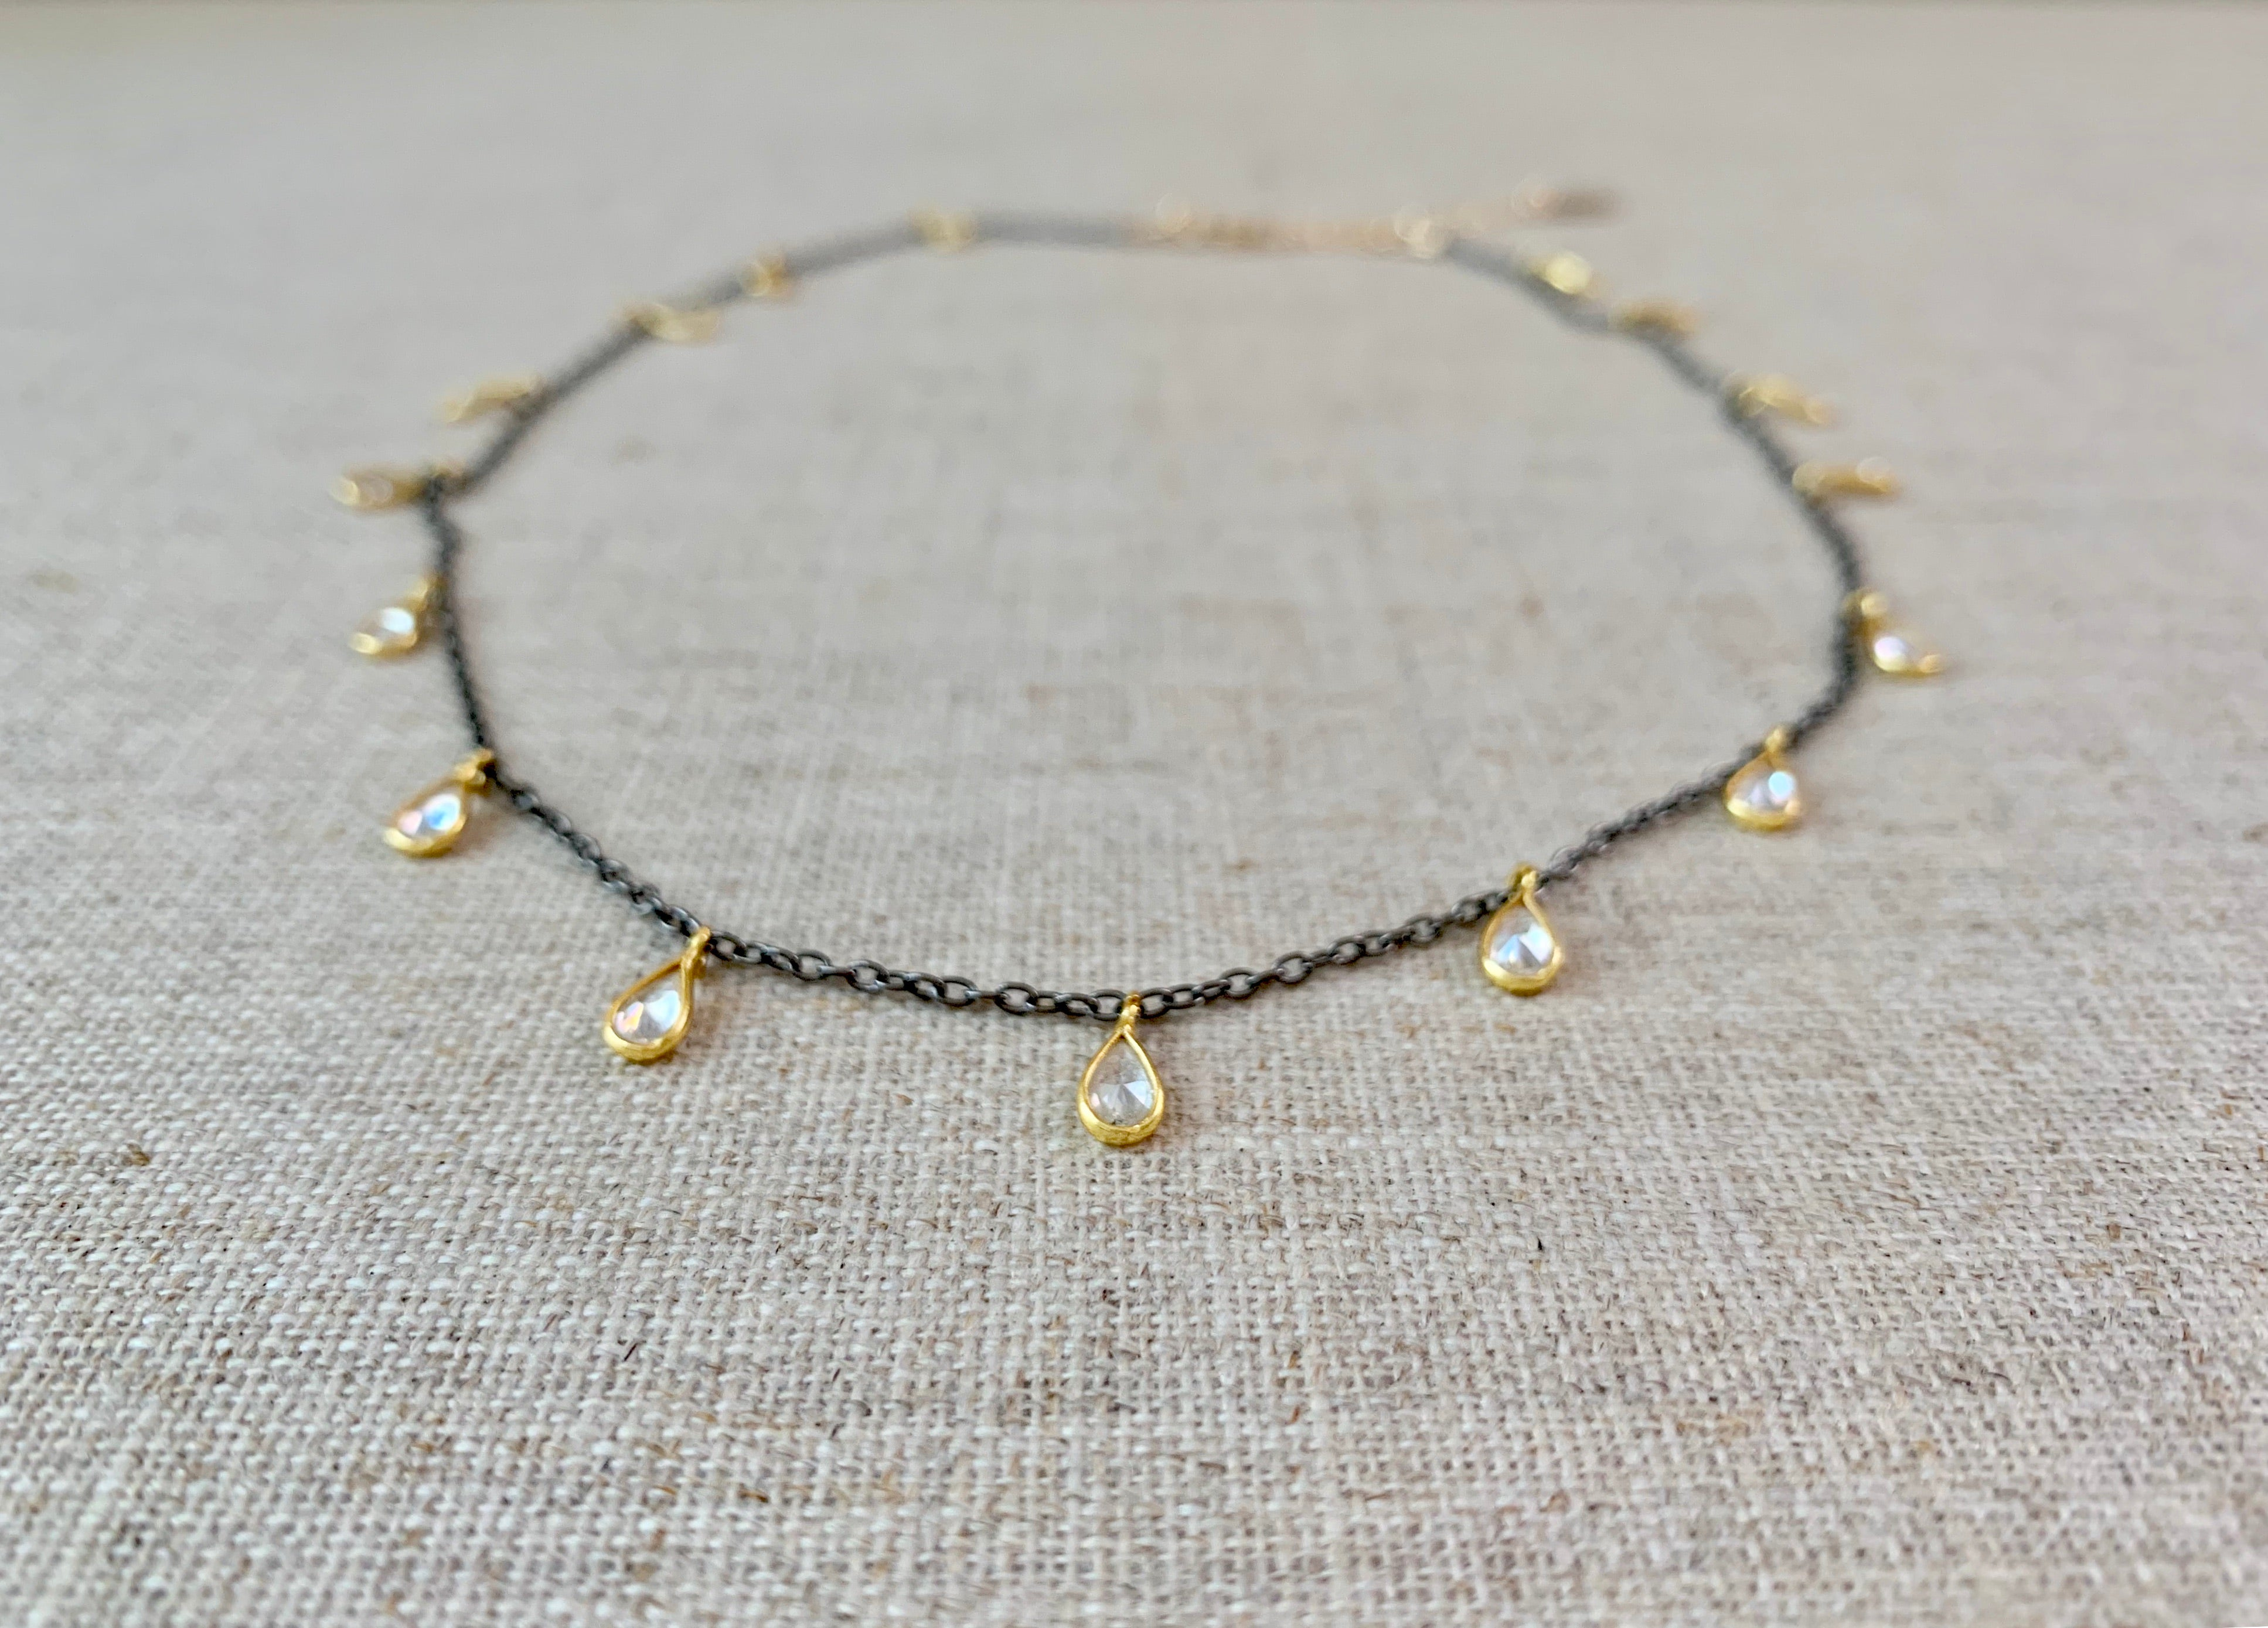 Secrets of the Orient Choker - Christiana Layman Designs